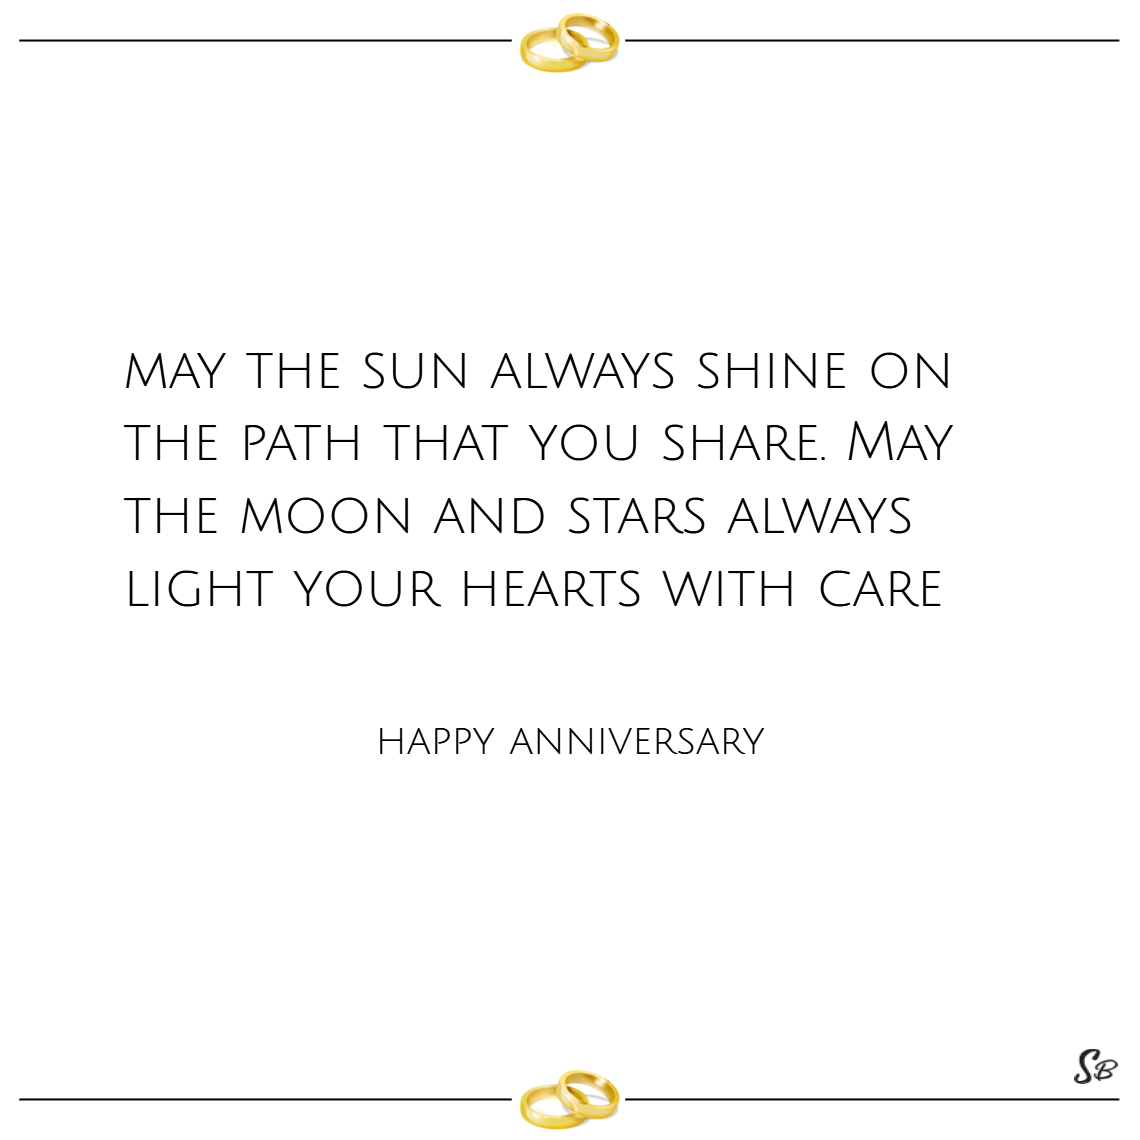 May the sun always shine on the path that you share. may the moon and stars always light your hearts with care